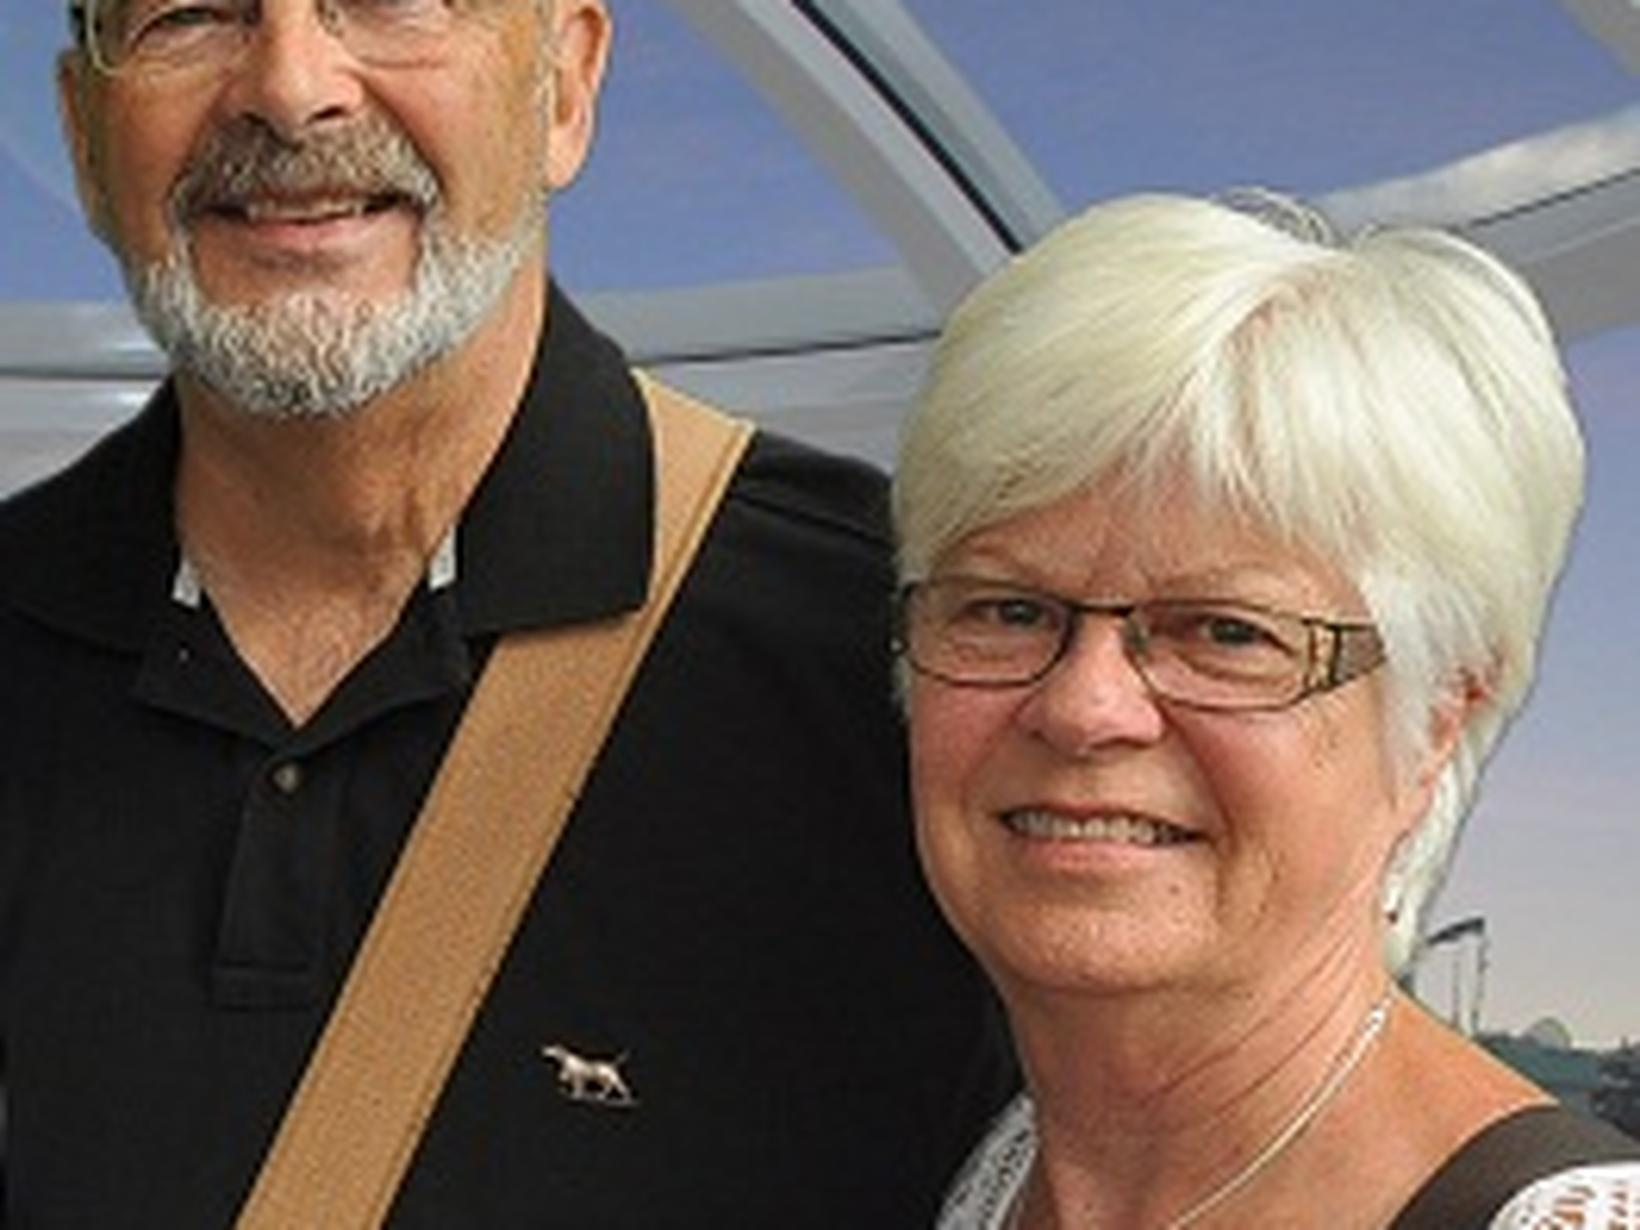 Michael & Jan from Napier, New Zealand